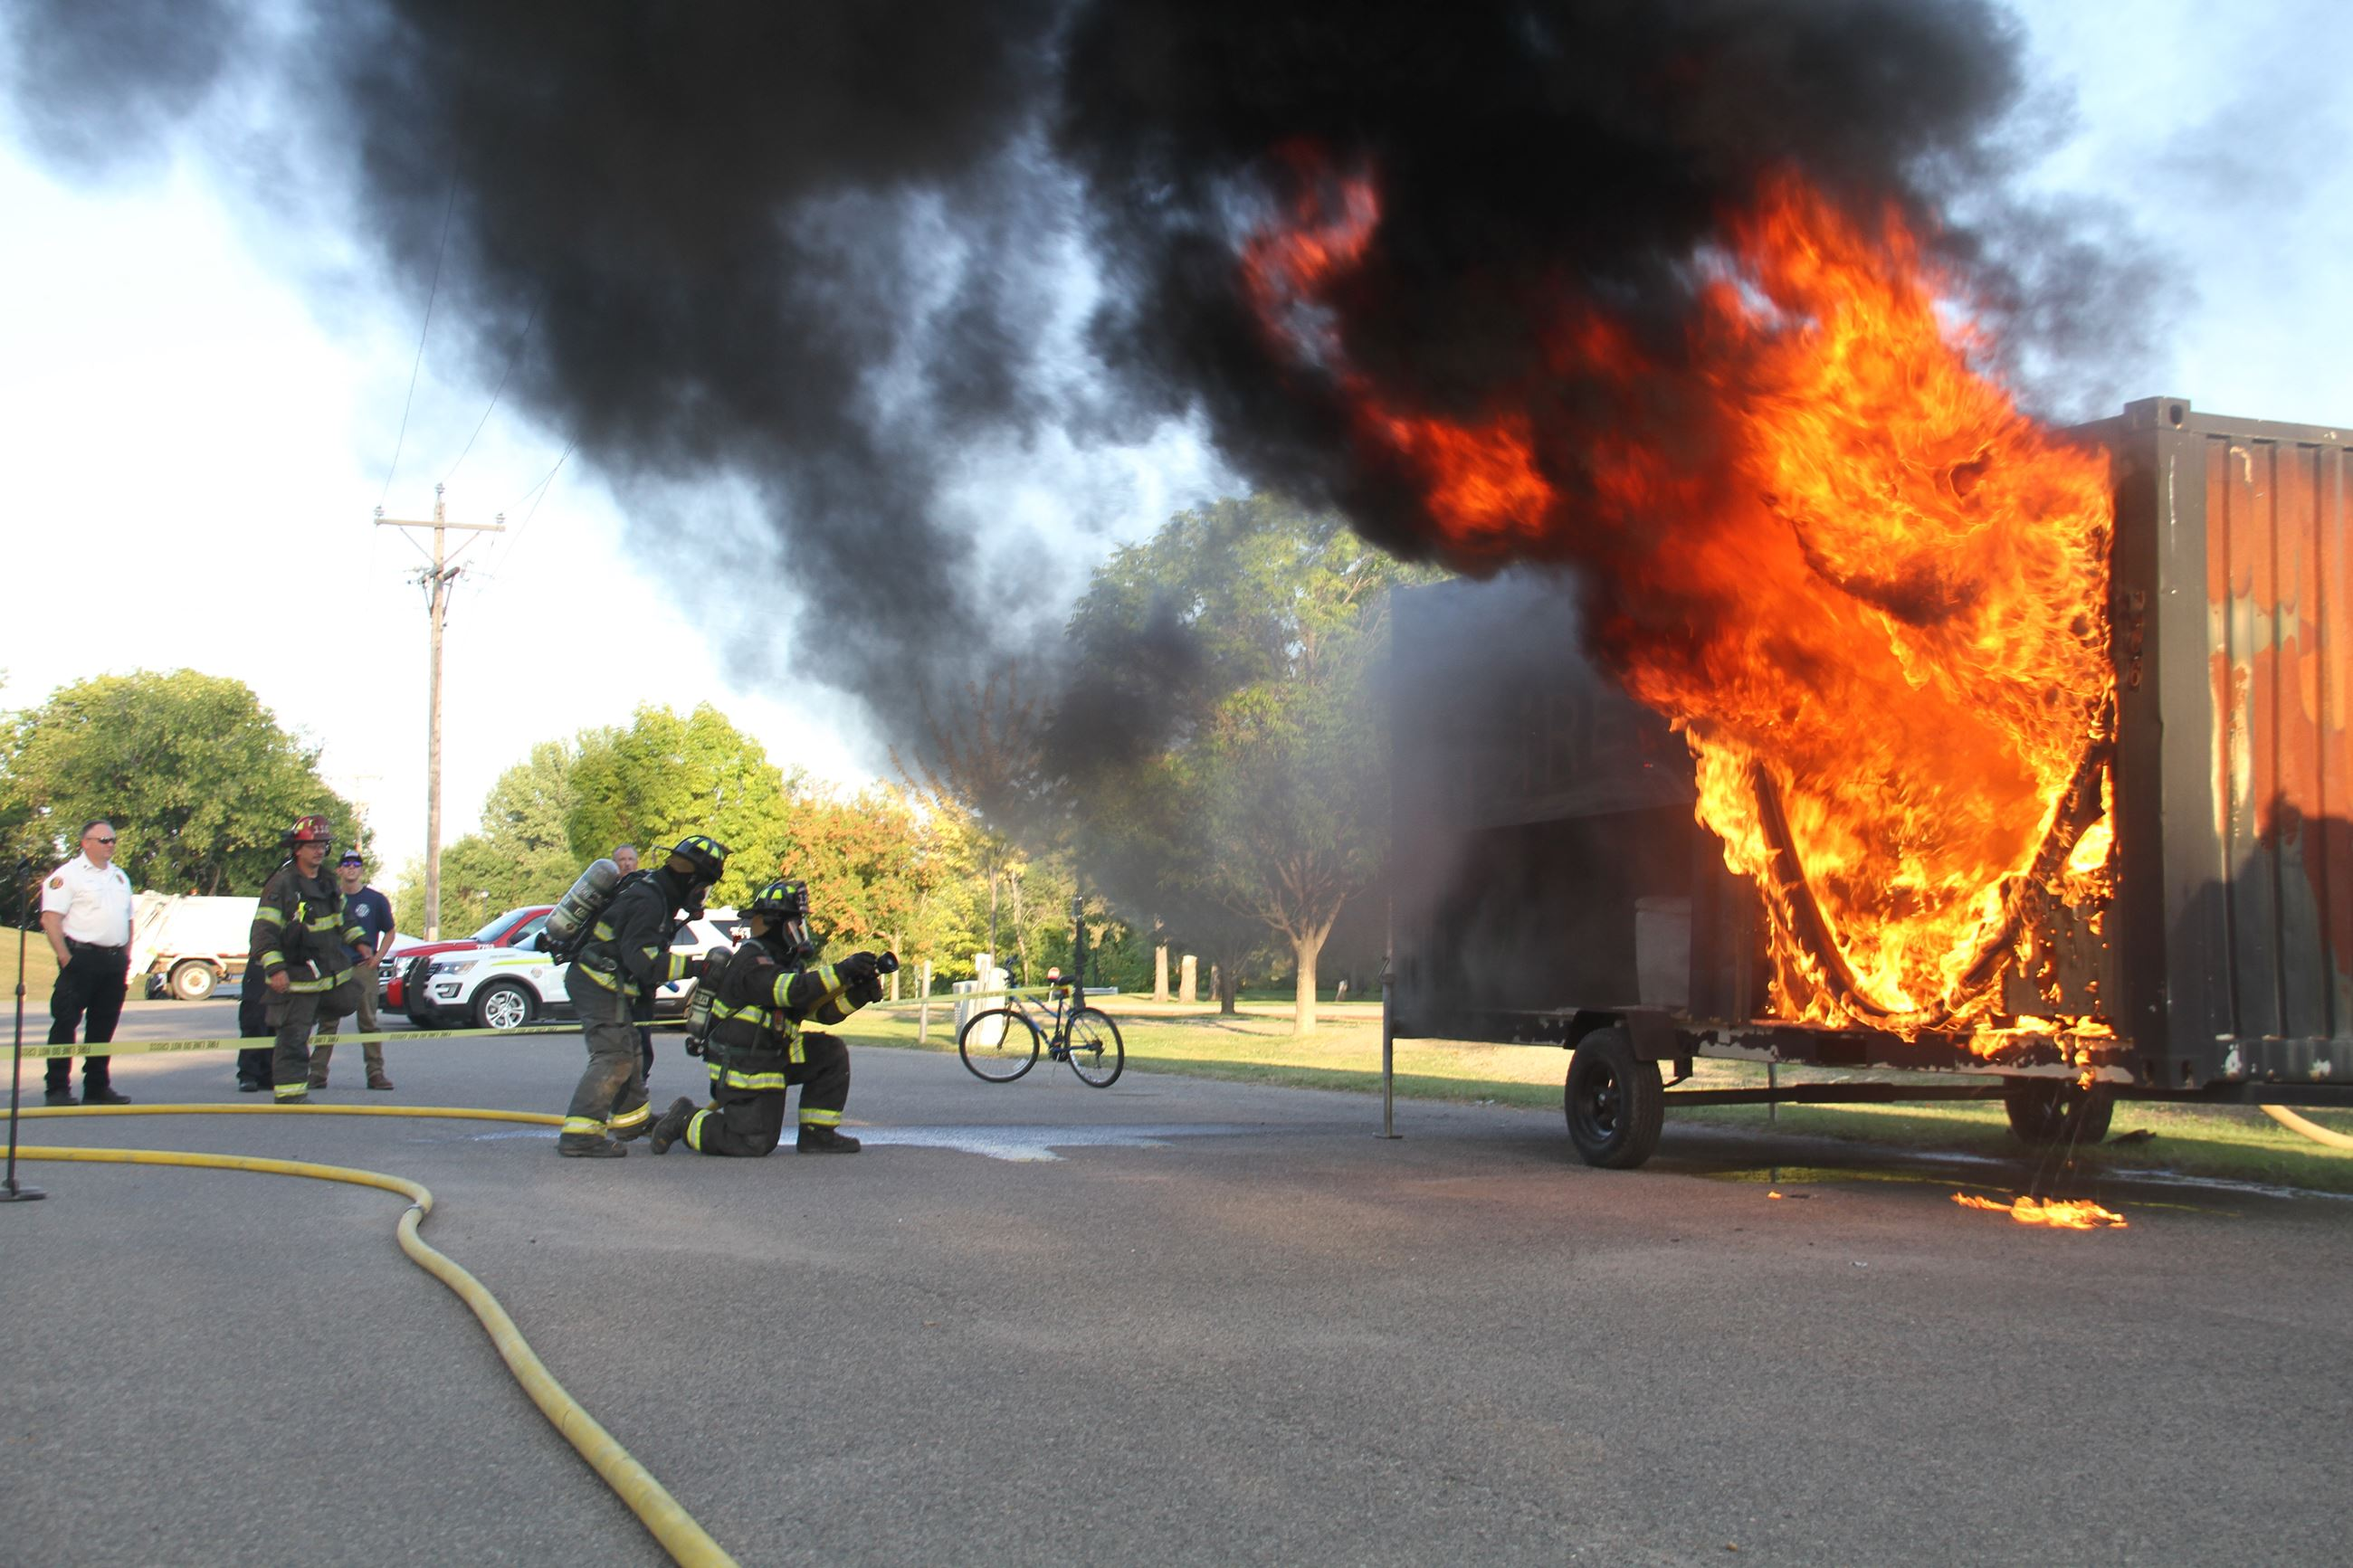 West Fargo Fire Department house fire demonstration